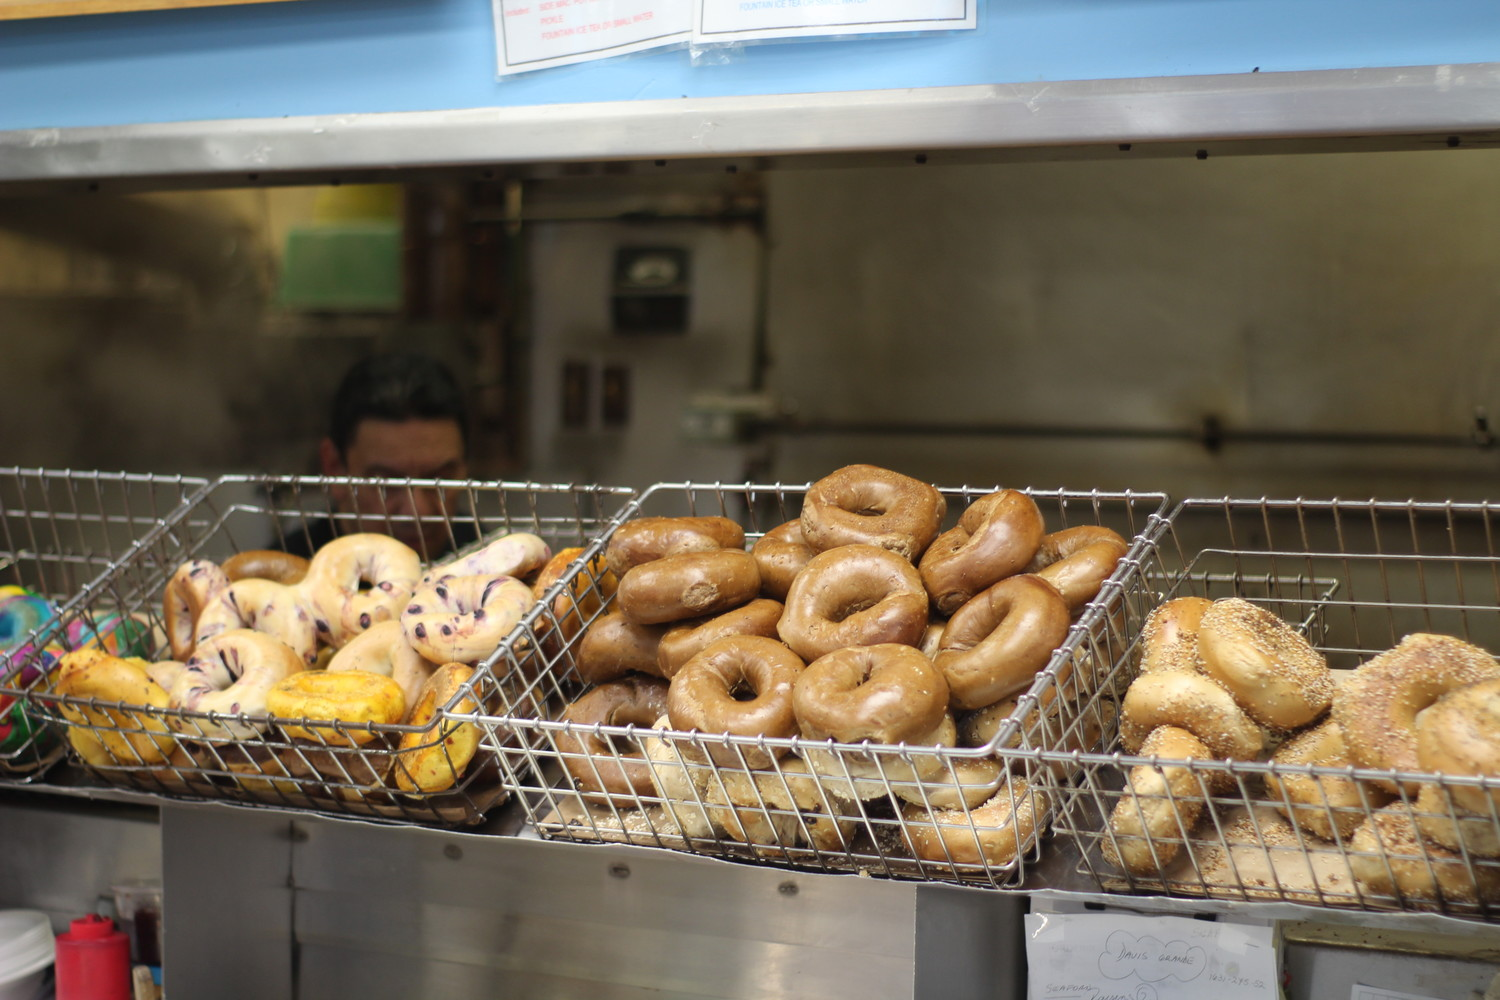 Because the Seaford Bagel store is owned by CRJ Trading Co., their bagels are made fresh on-site out of the fresh ingredients ordered in wholesale.